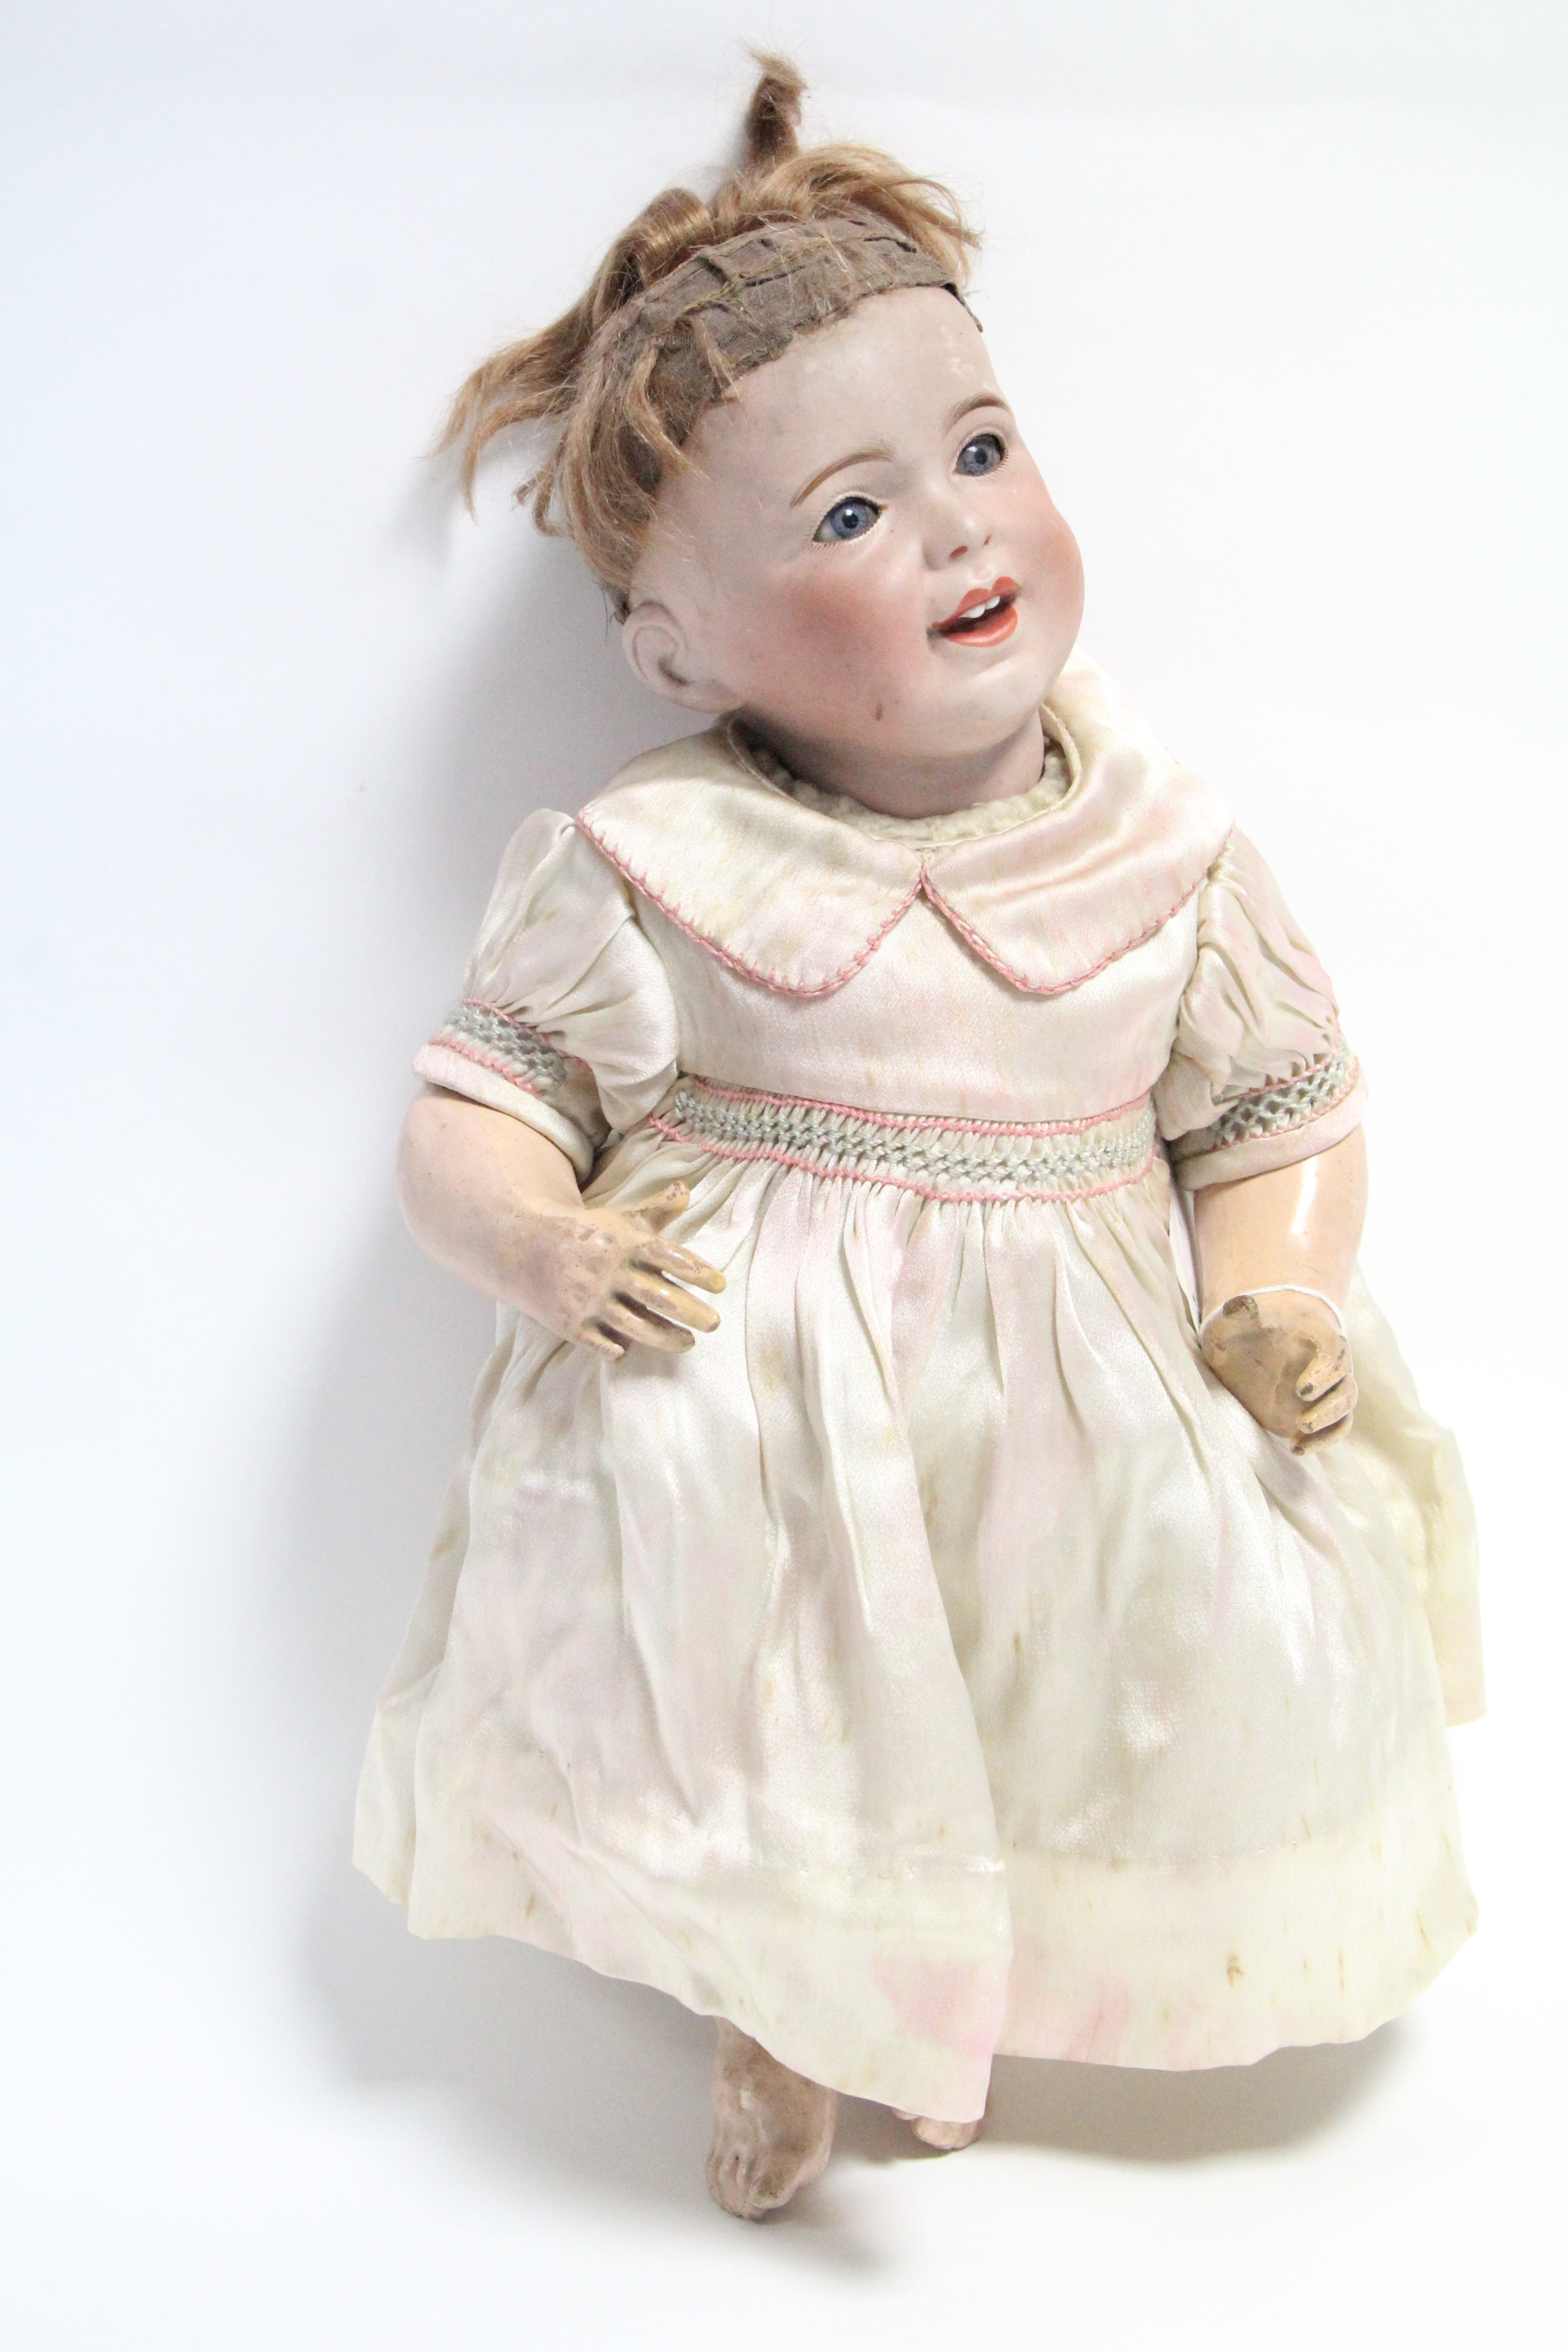 Lot 284 - A Jumeau bisque head girl doll (SFBJ 230 Paris 8), with blue sleeping eyes, open mouth, & with